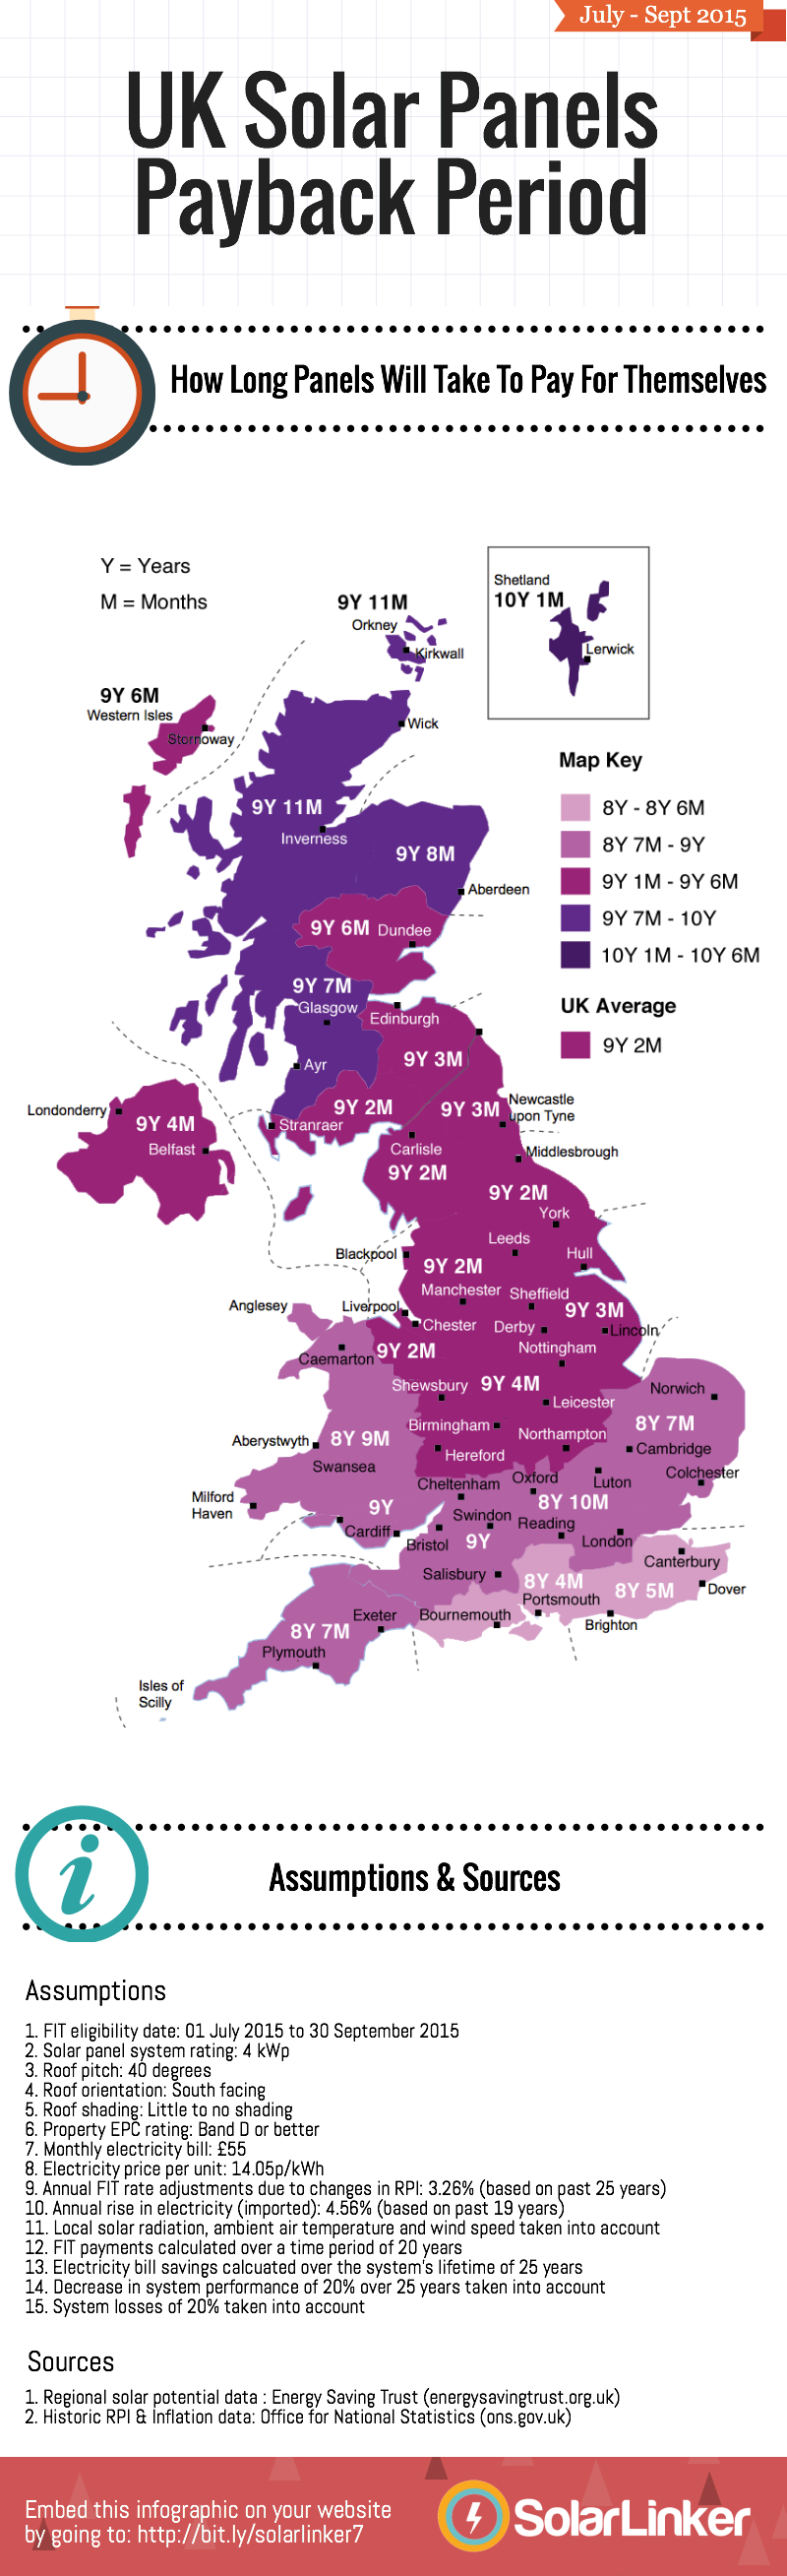 What Is the Payback Period of Solar PV Panels in the UK? July 2015